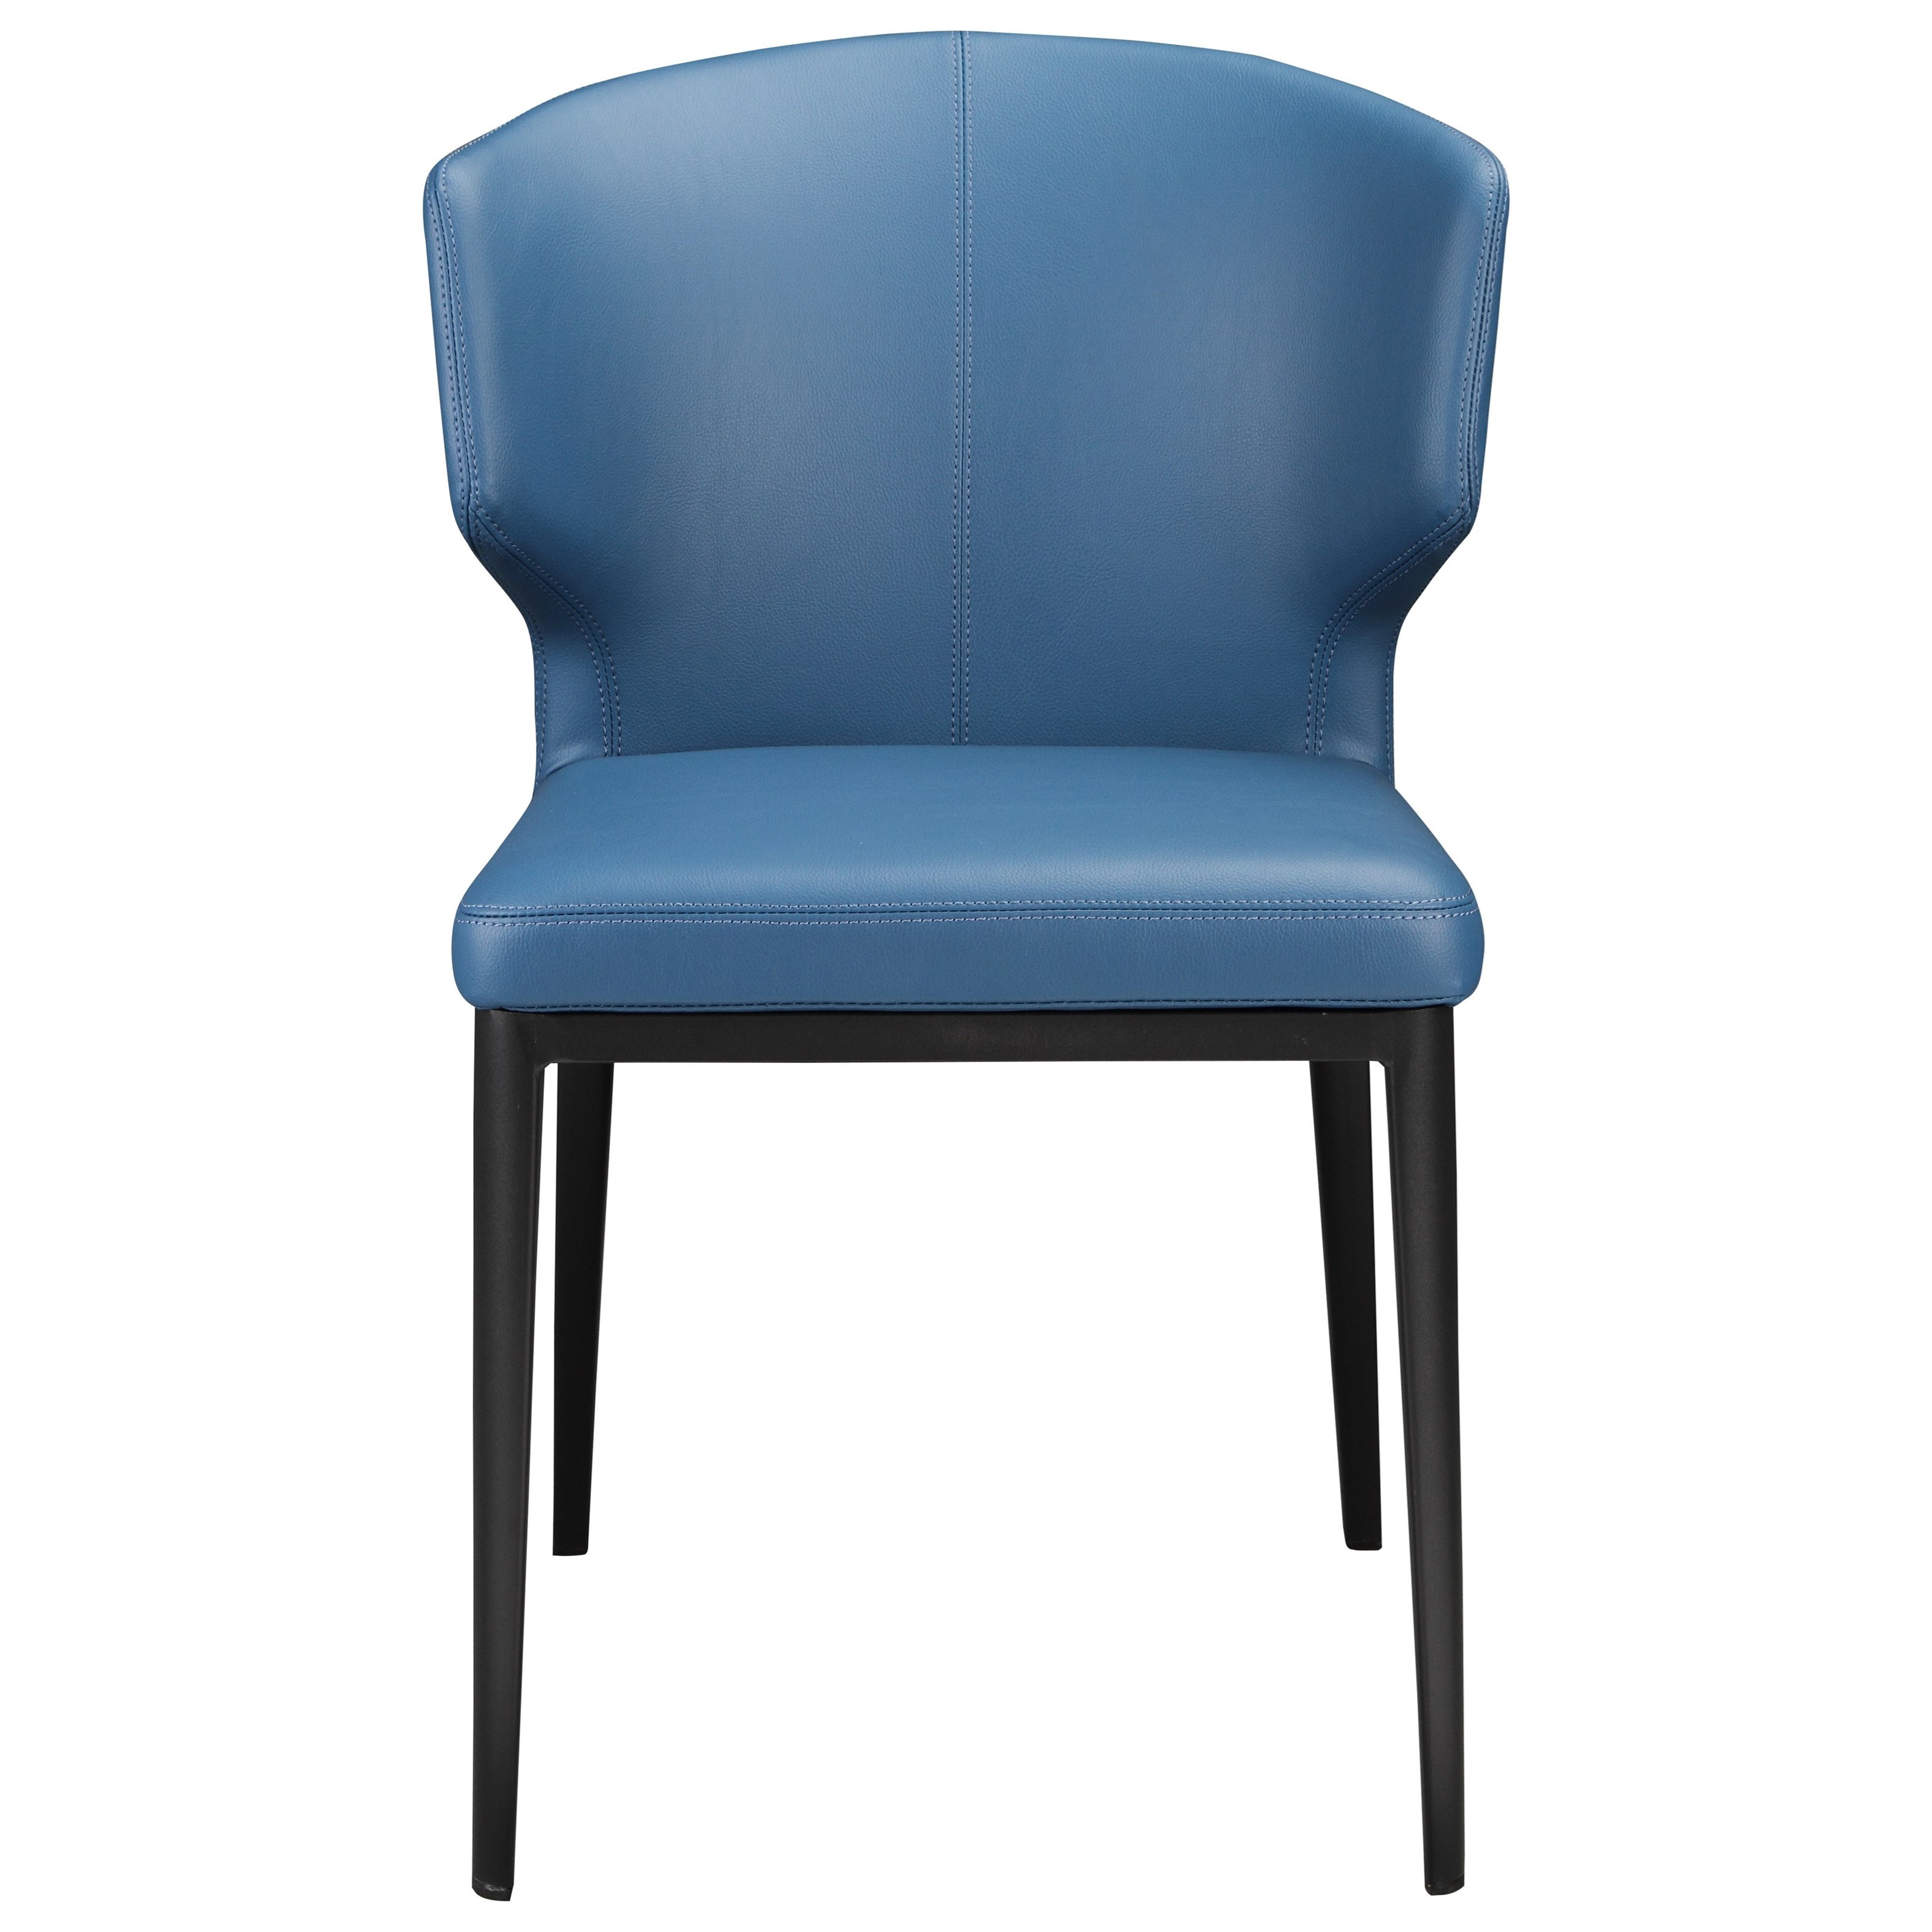 Delaney Side Chair by Moe's Home Collection at Stoney Creek Furniture